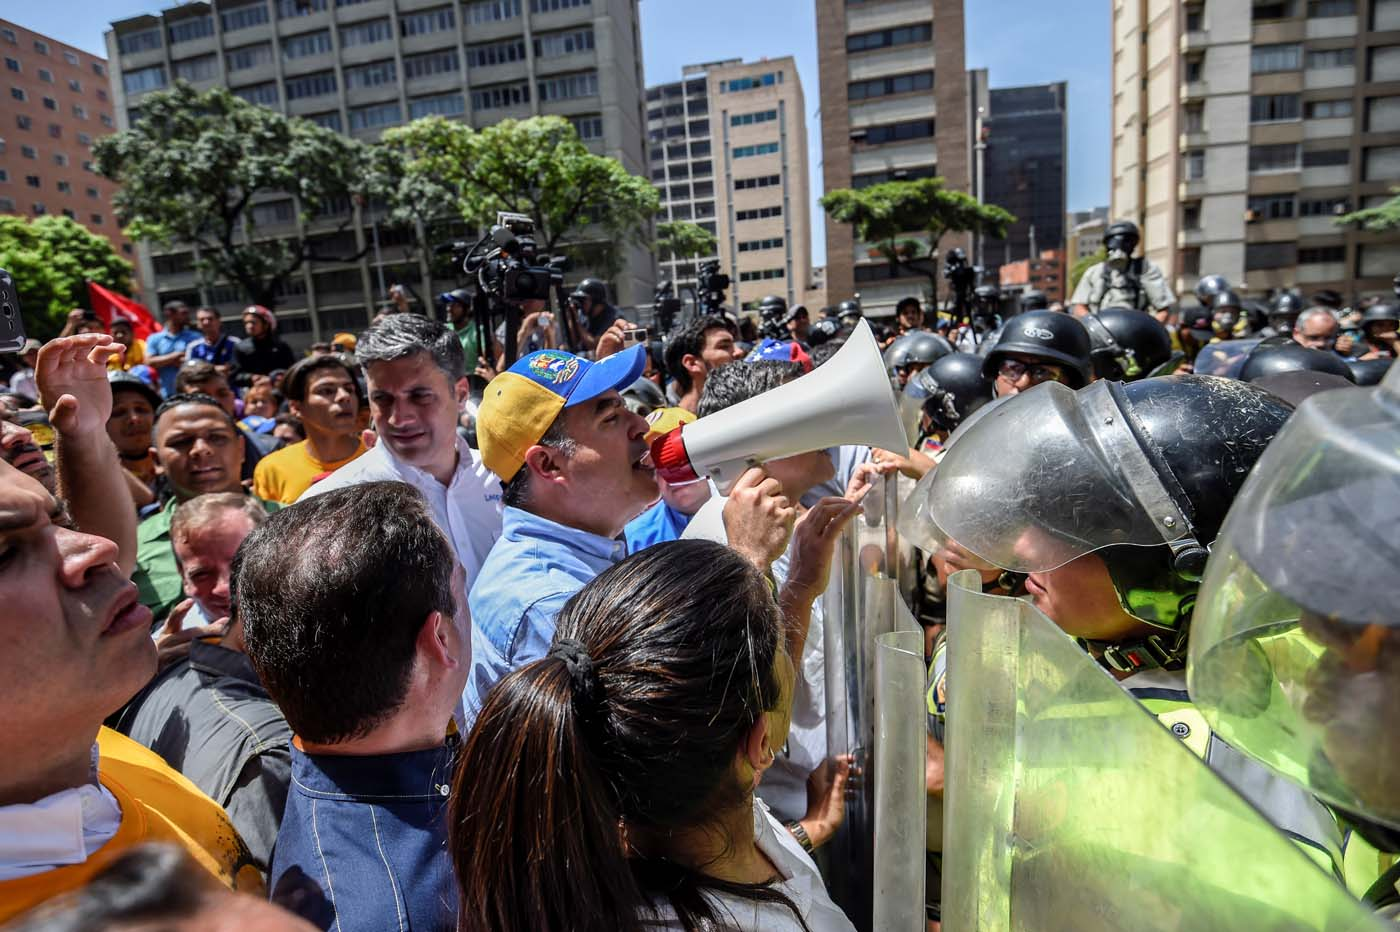 The President of the National Assembly Julio Borges using a megaphone addresses riot police agents during a protest against Nicolas Maduro's government in Caracas on April 4, 2017. Protesters clashed with police in Venezuela Tuesday as the opposition mobilized against moves to tighten President Nicolas Maduro's grip on power. Protesters hurled stones at riot police who fired tear gas as they blocked the demonstrators from advancing through central Caracas, where pro-government activists were also planning to march. / AFP PHOTO / JUAN BARRETO